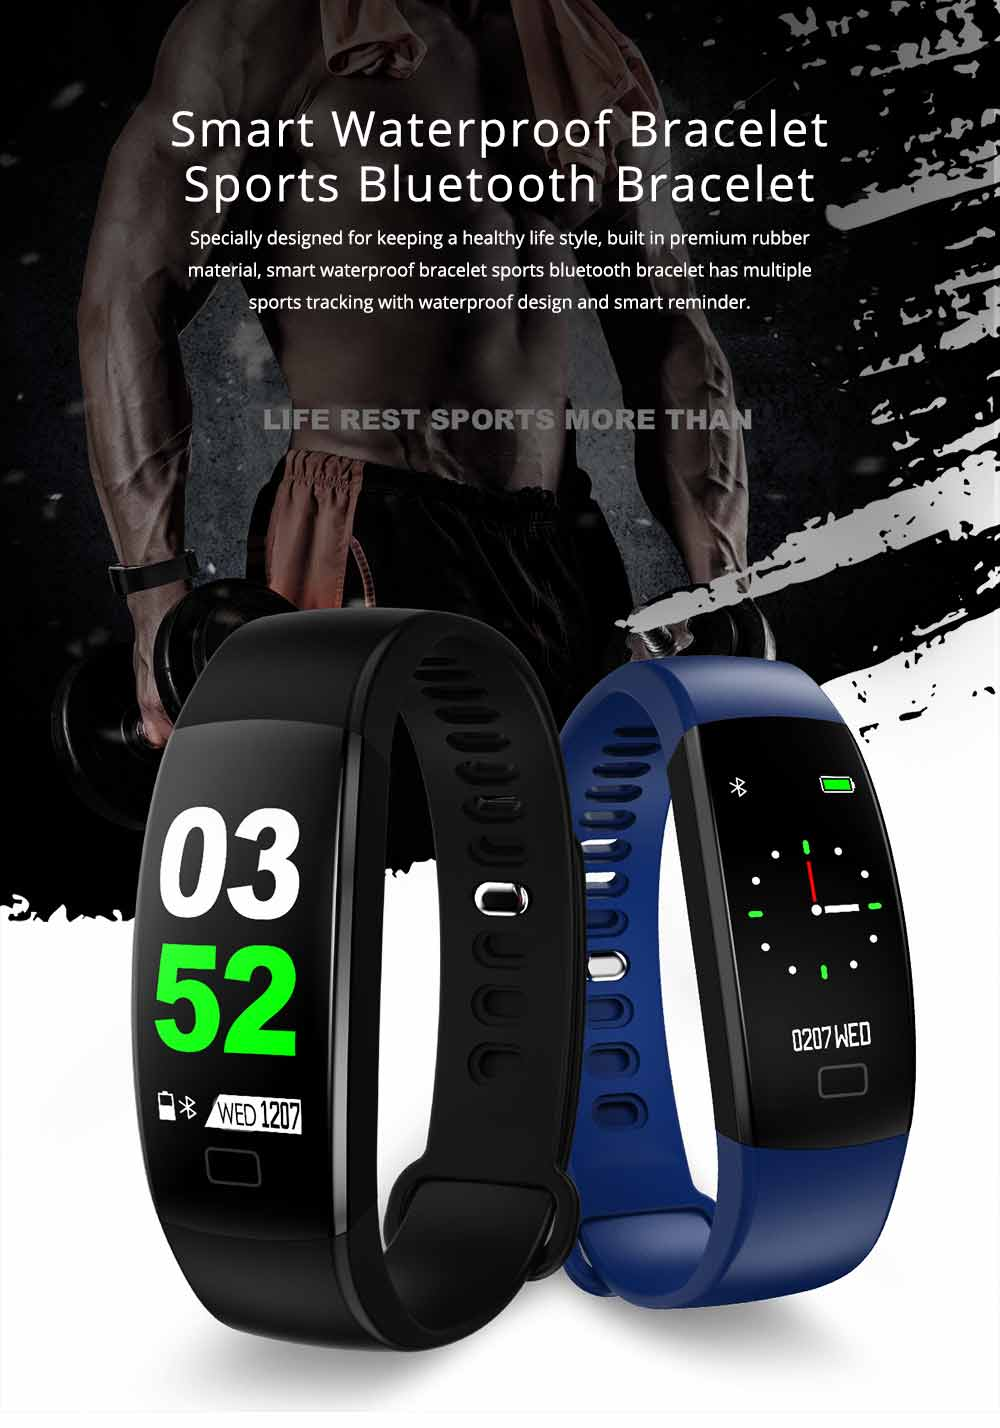 Waterproof Sports Bluetooth Bracelet for Call Reminder Monitoring, Music, GPS and Weather 0